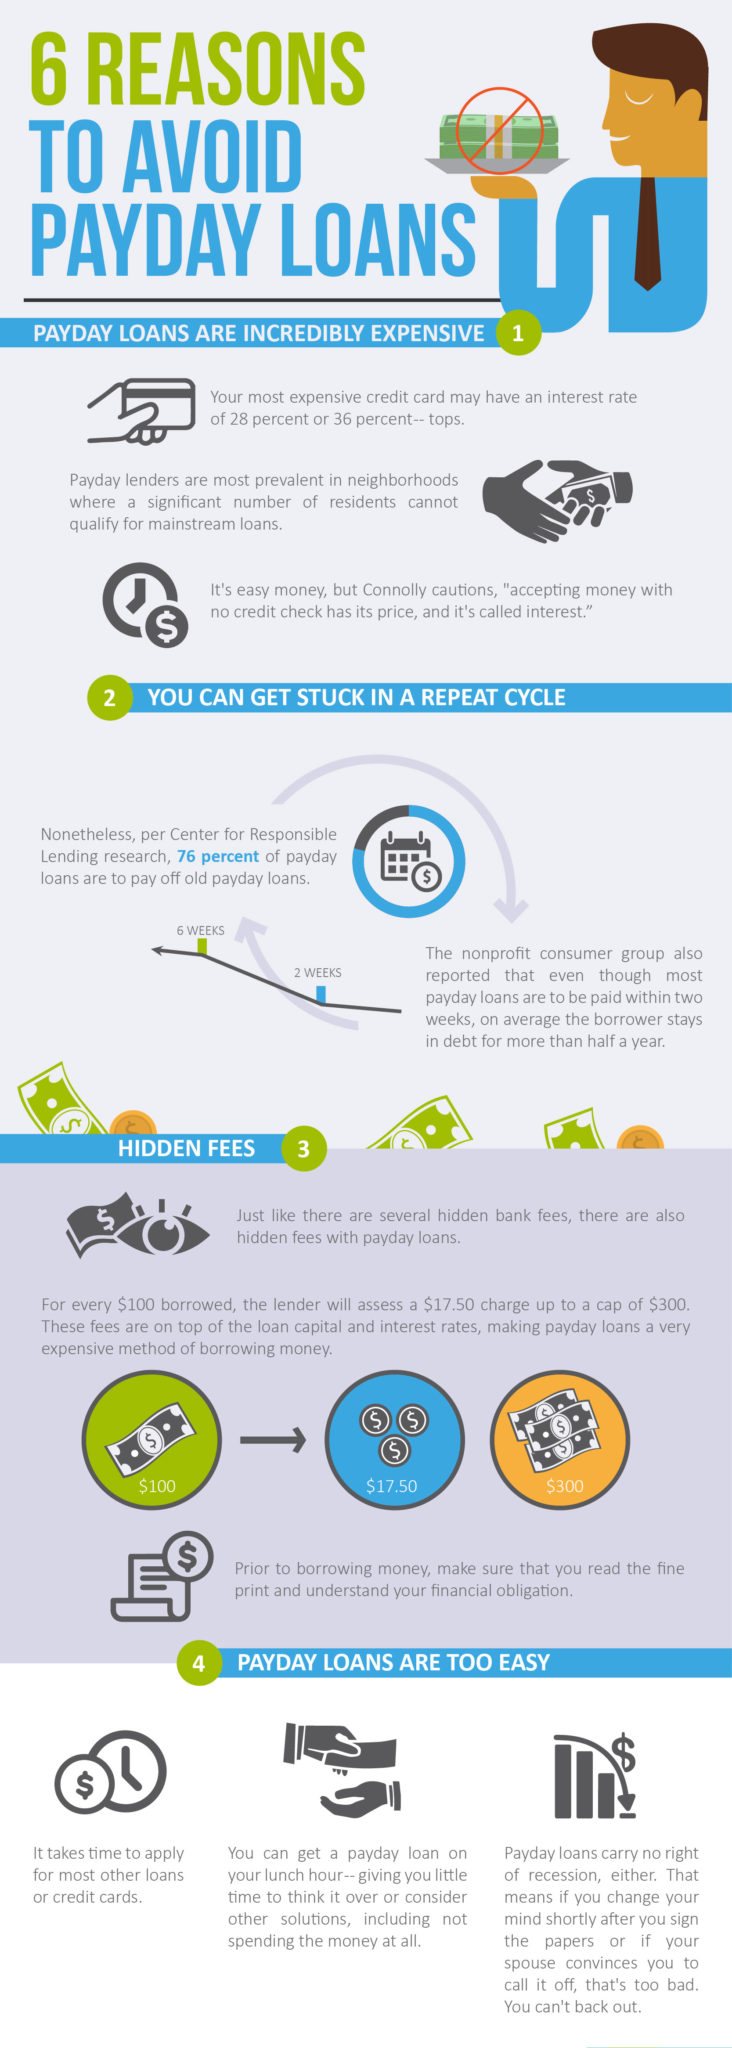 An infographic about the 6 reasons to avoid payday loans